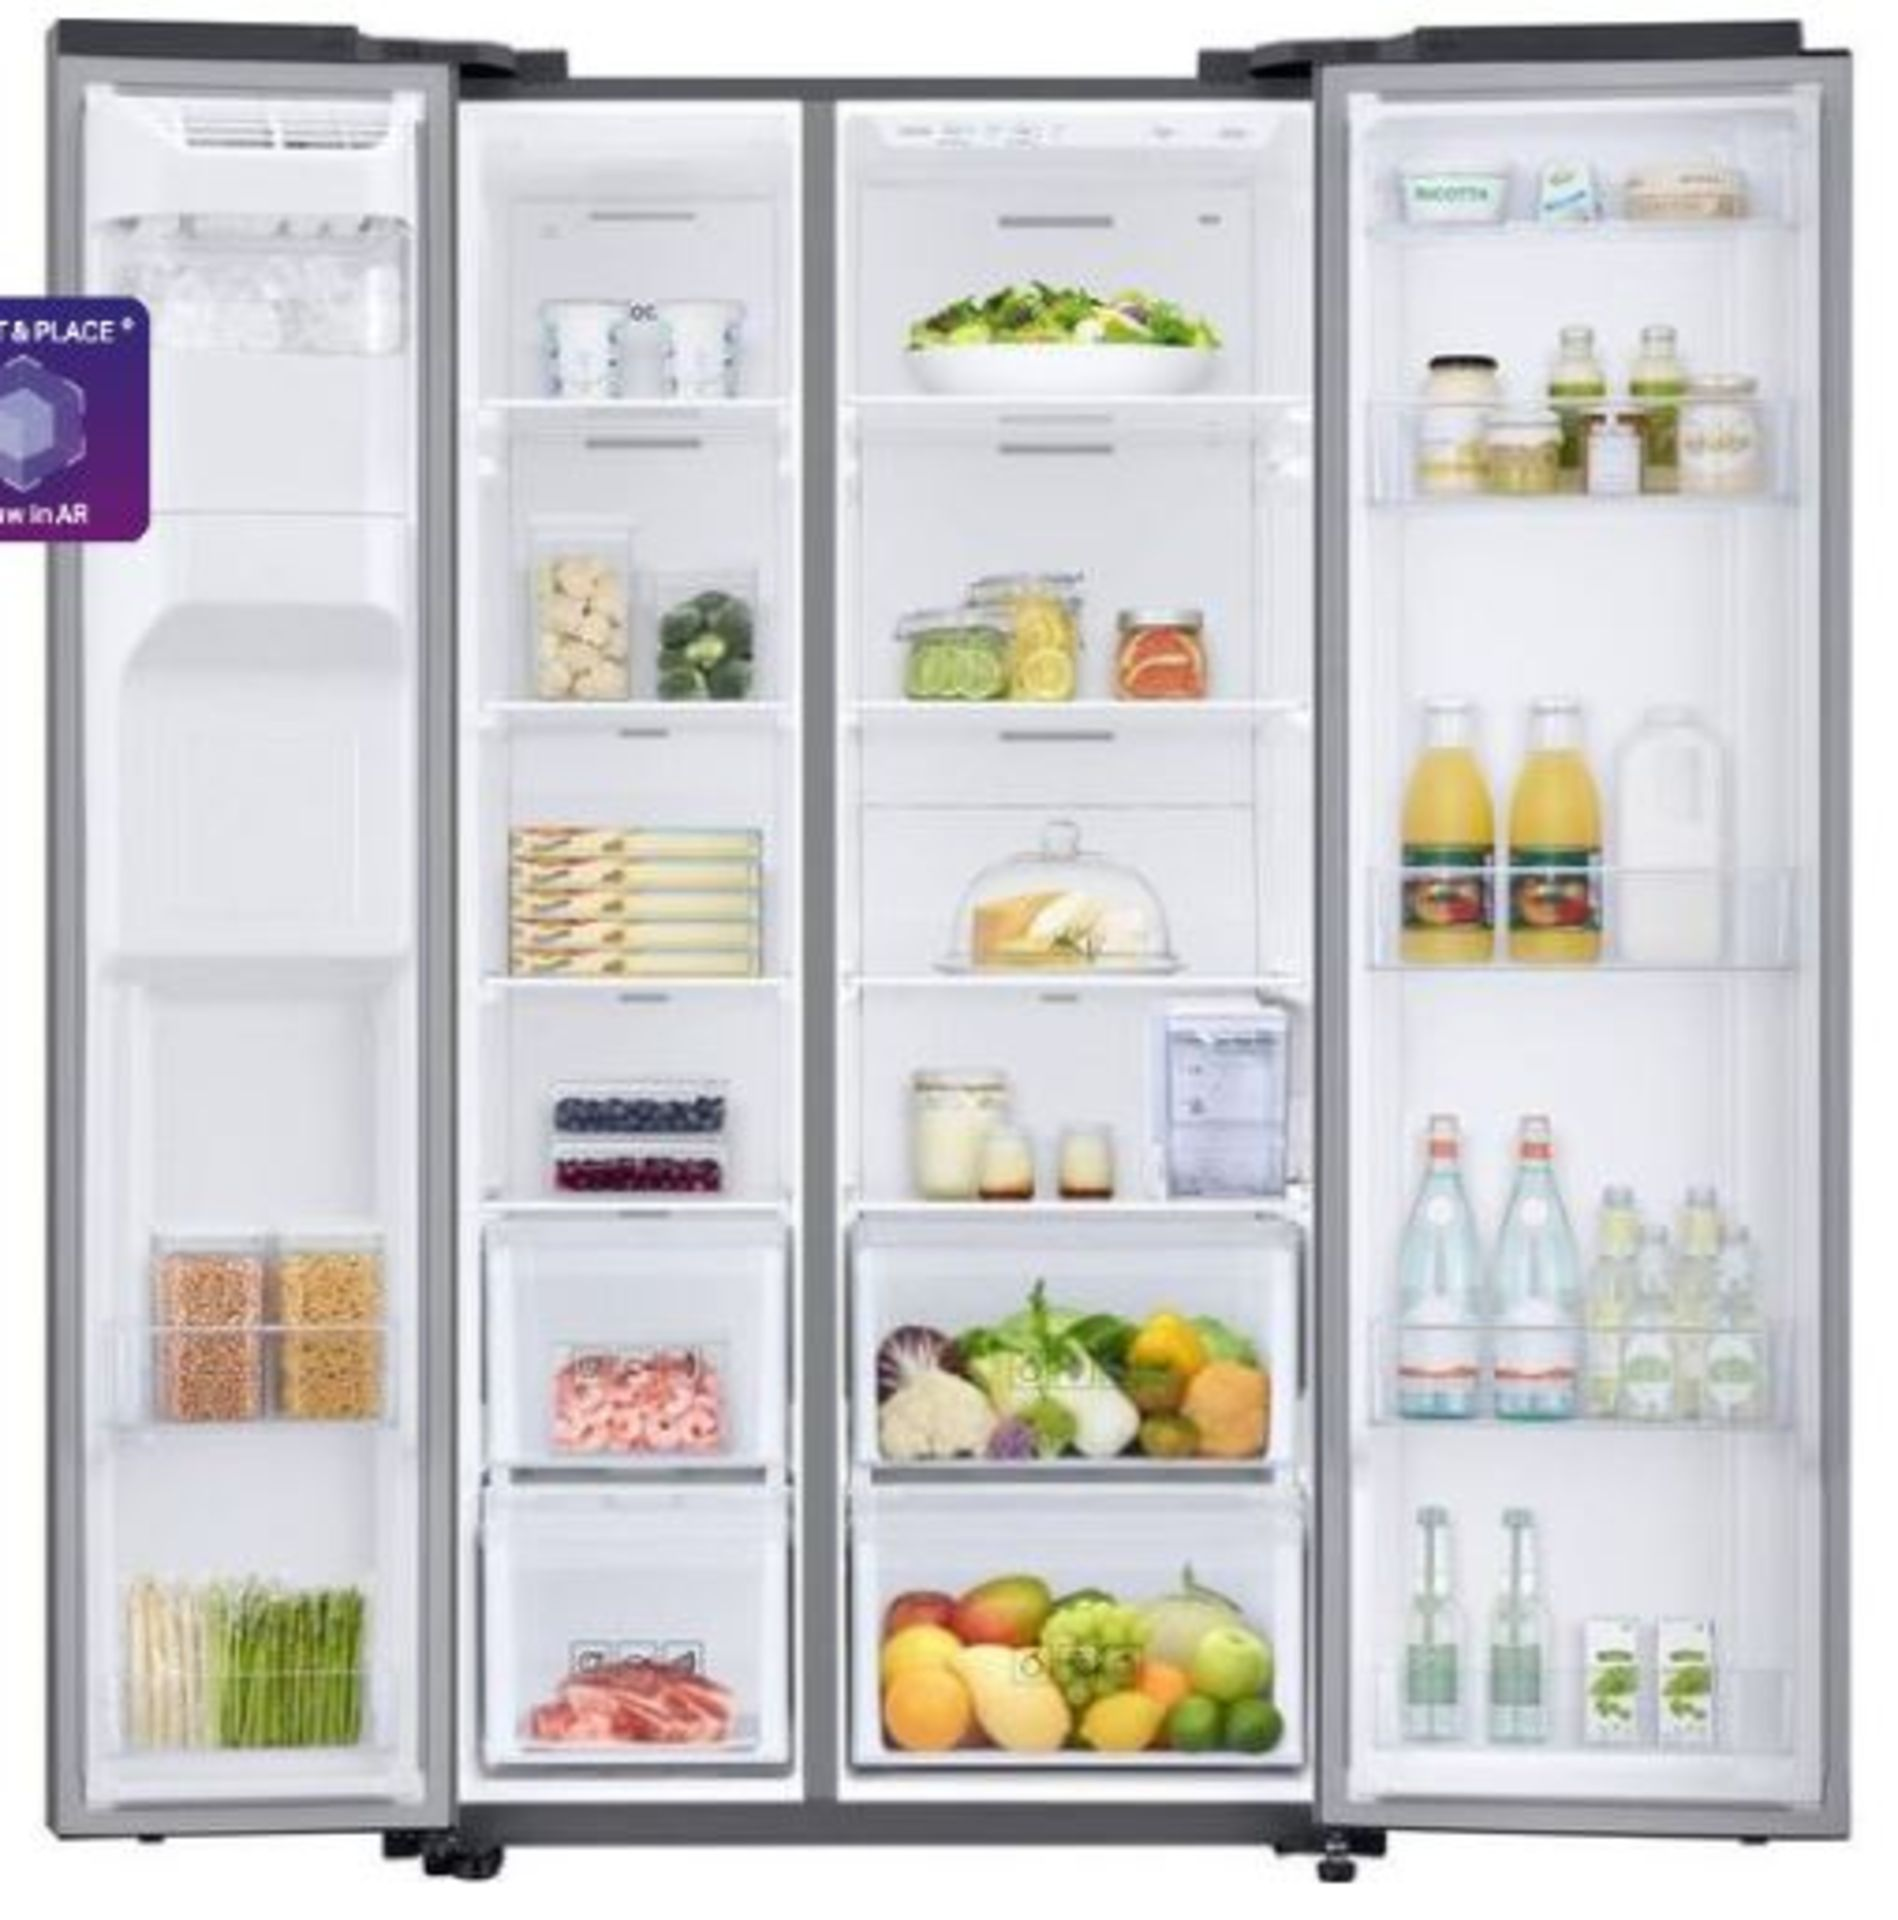 Lot 2 - Pallet of 1 Samsung Water & Ice Fridge freezer. Latest selling price £1,149.99*